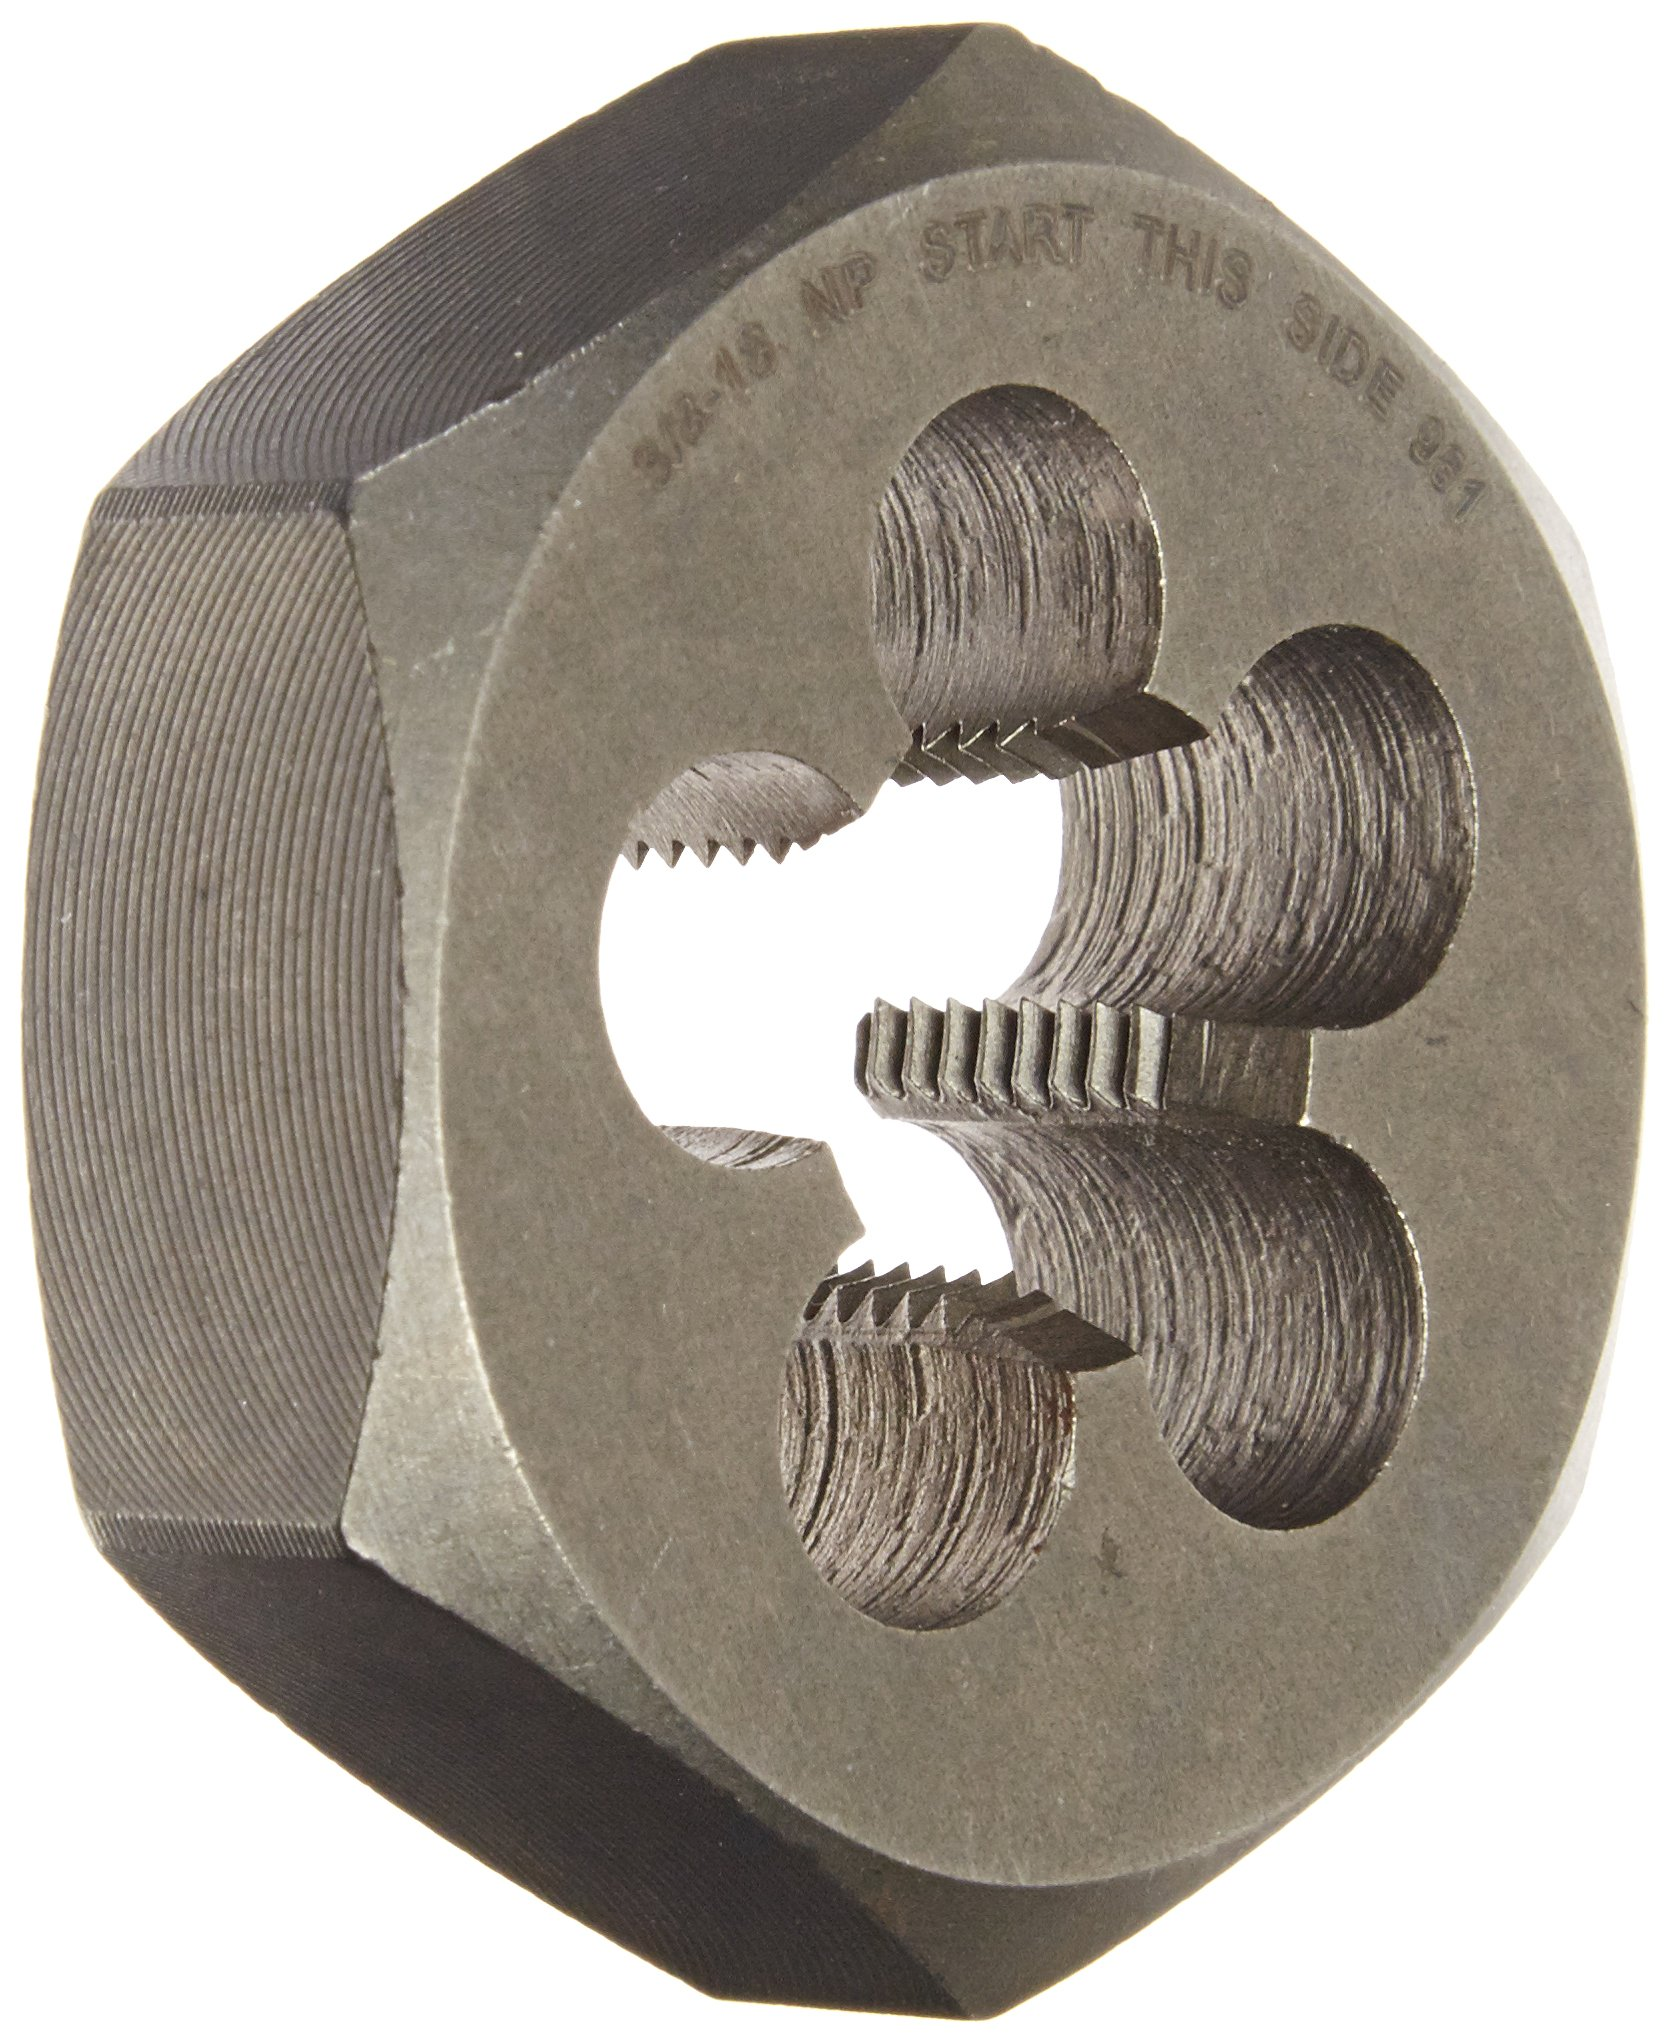 Drill America 3/8''-18 Carbon Steel Hex NPT Pipe Rethreading Die, DWT Series by Drill America